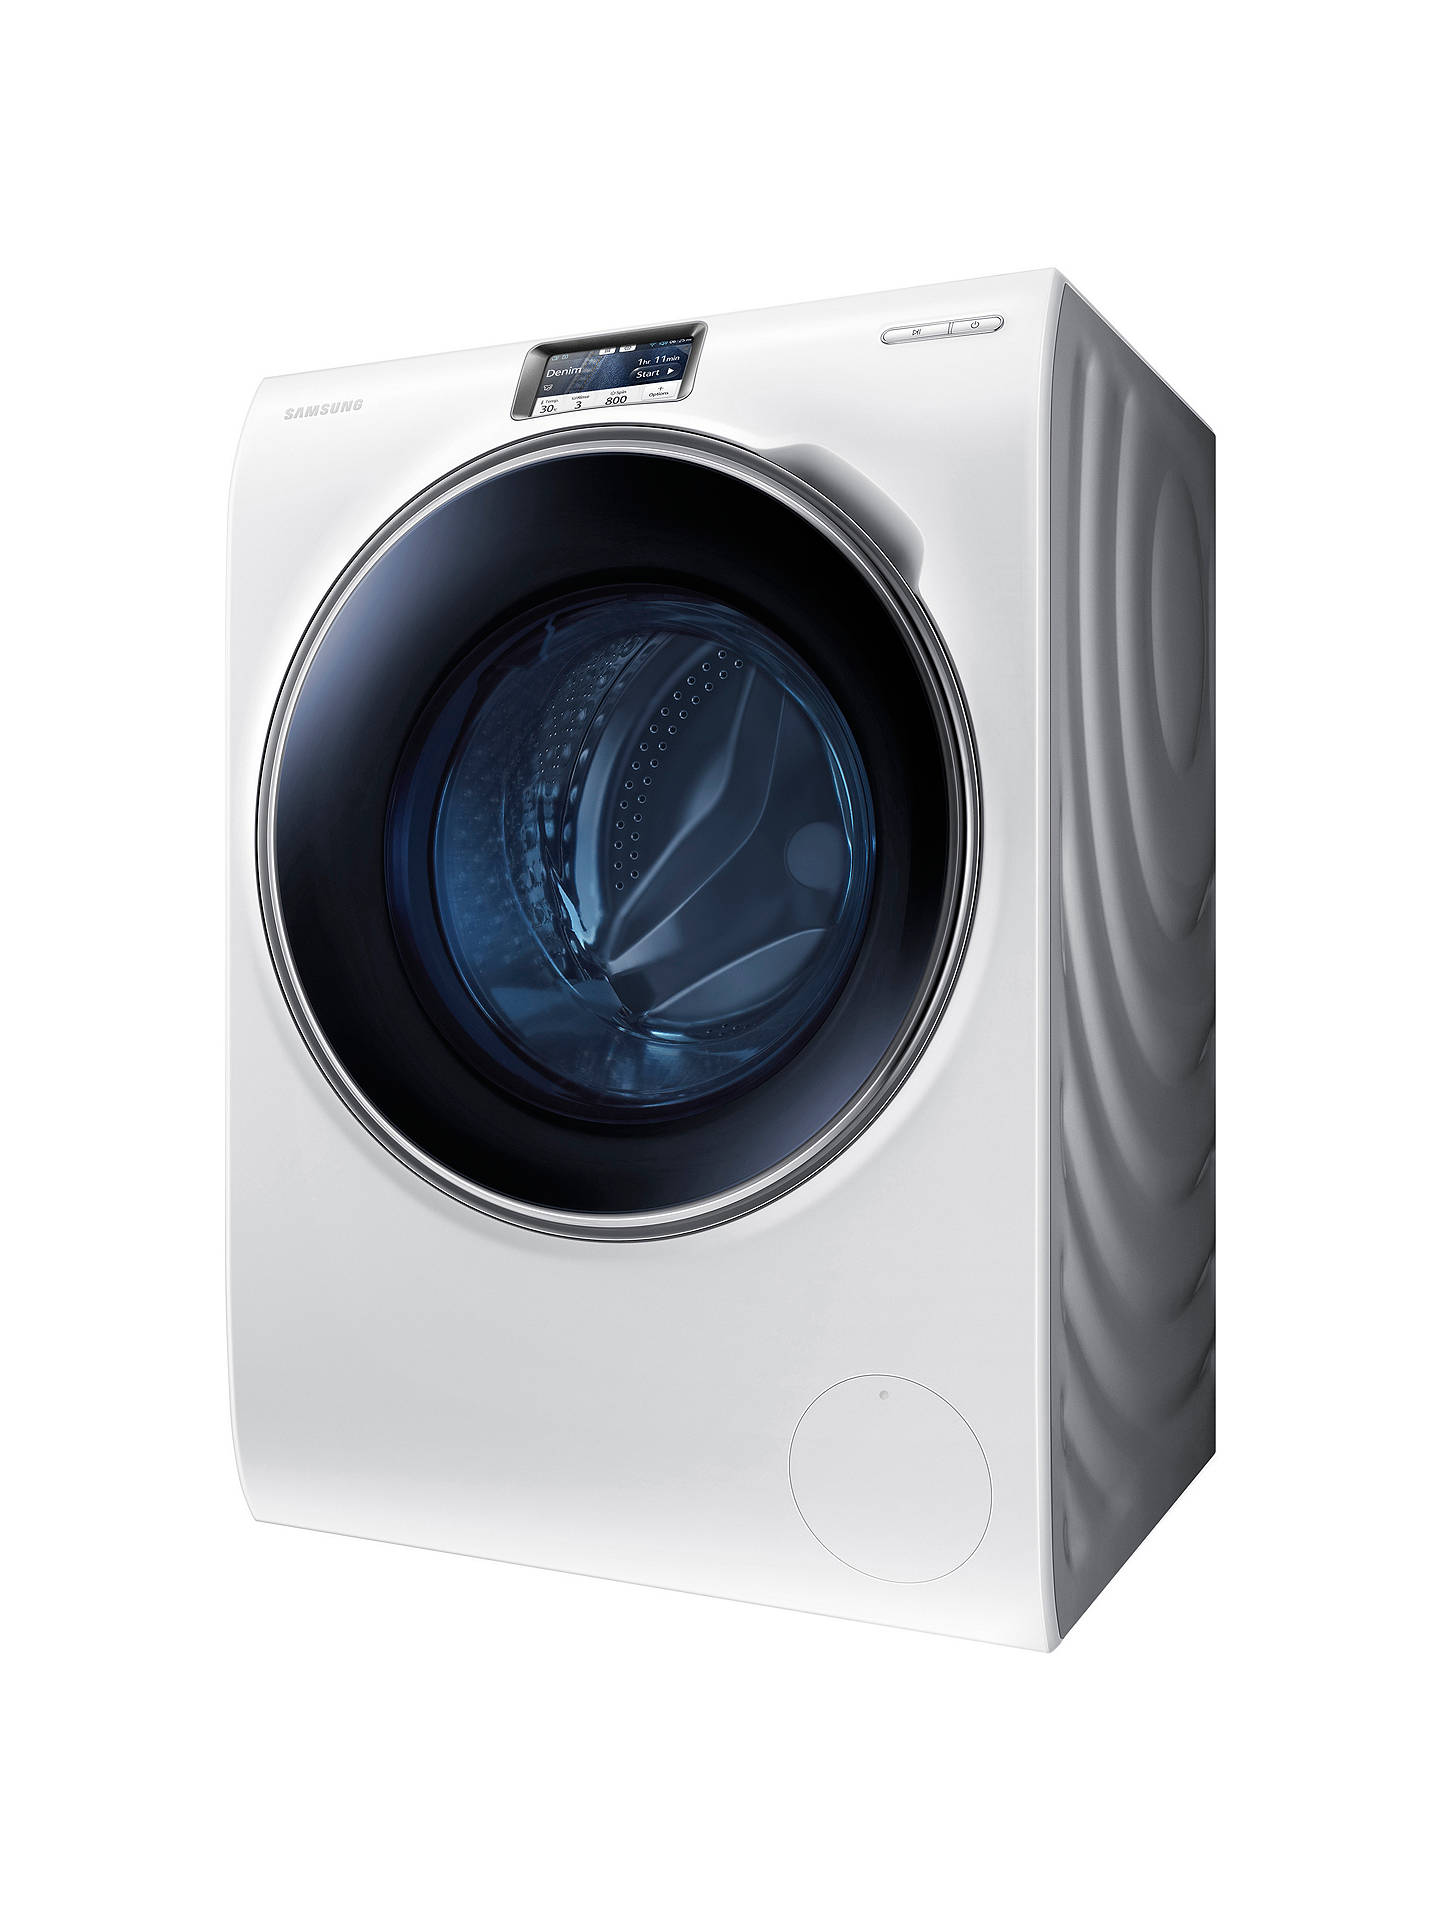 BuySamsung WW10H9600EW Freestanding Washing Machine, 10kg Load, A+++ Energy Rating, 1600rpm Spin, Stainless Steel, White Online at johnlewis.com